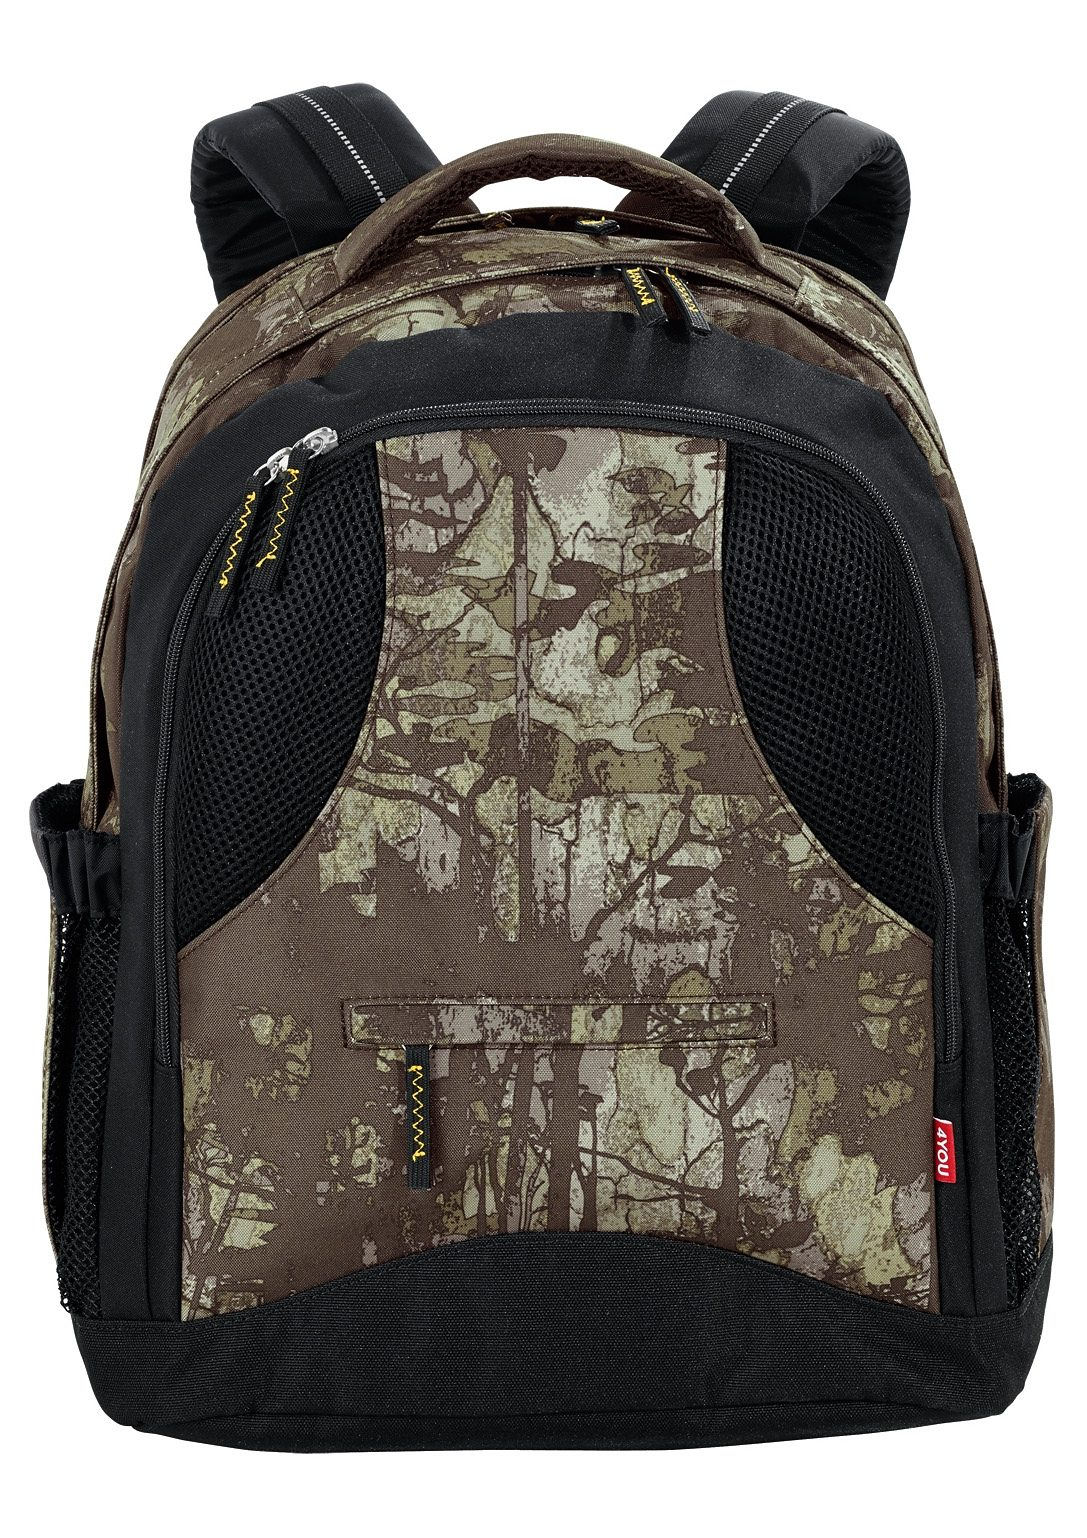 4YOU Schulrucksack mit Laptopfach, Camou Wood, »Compact«